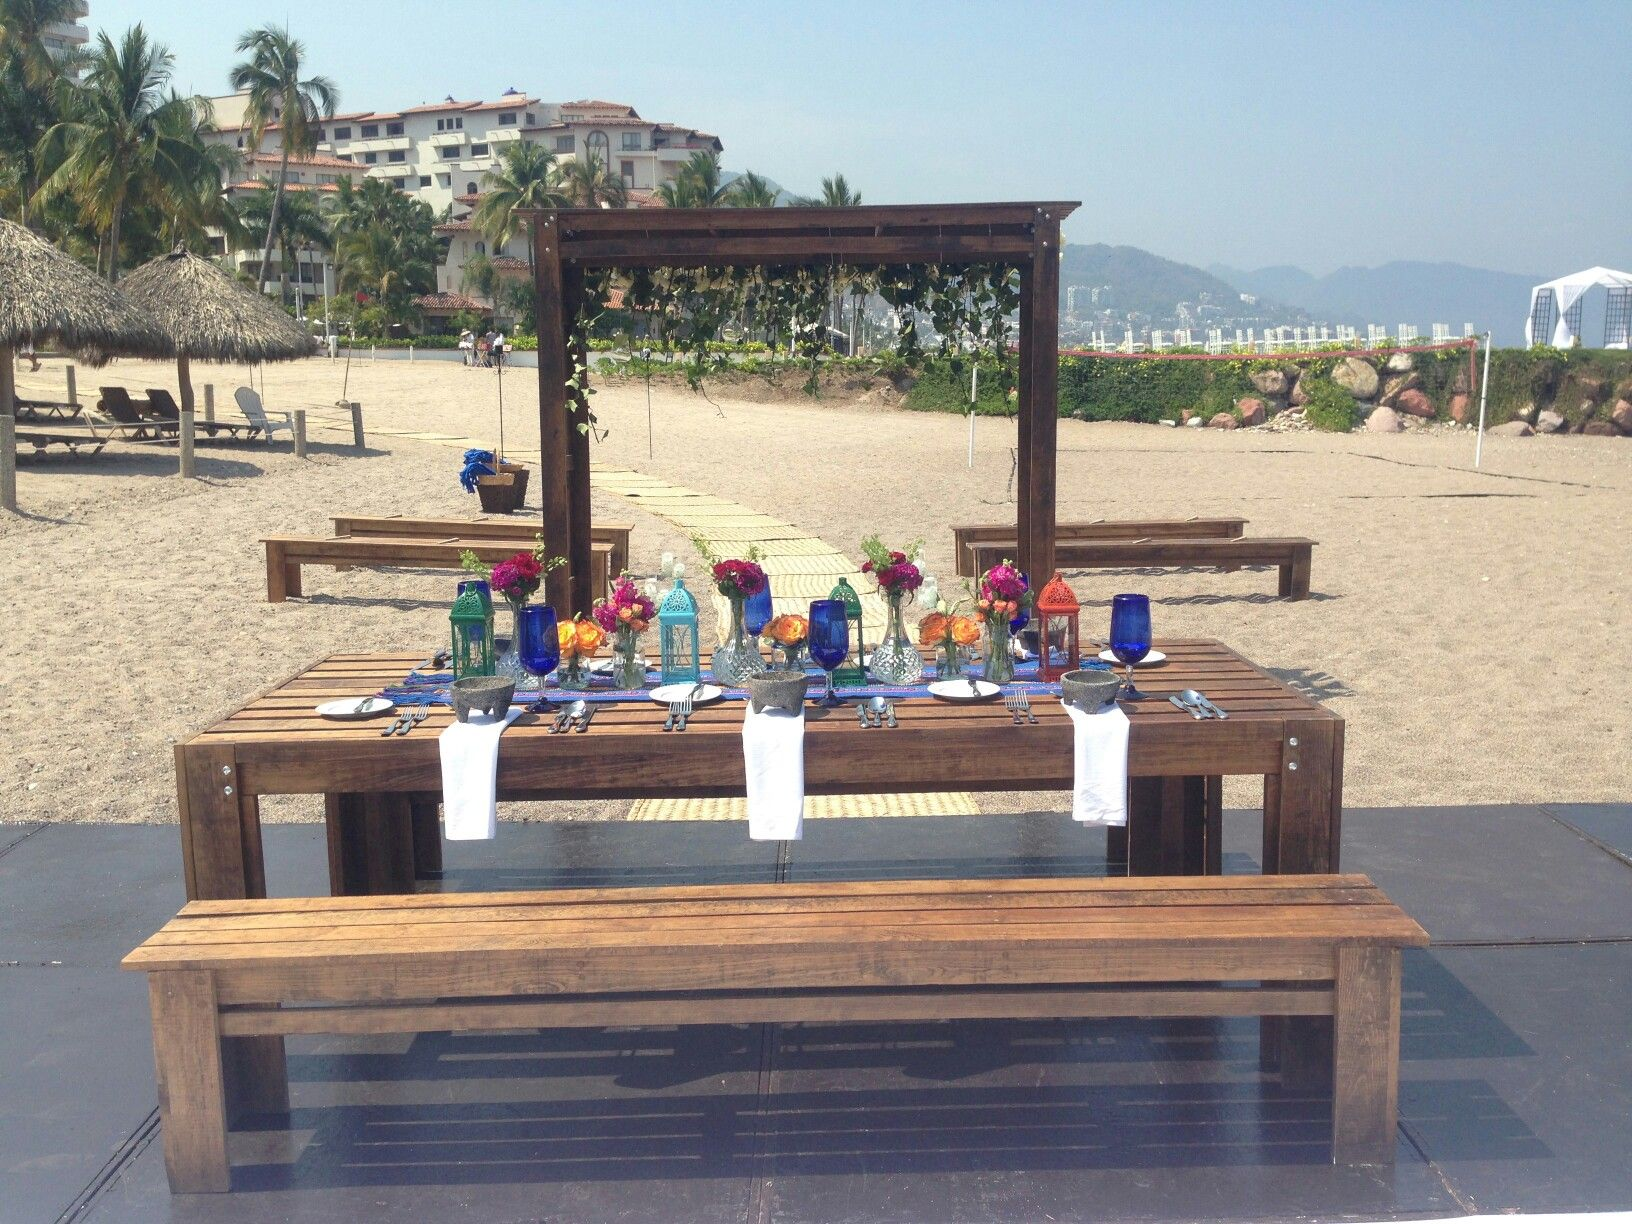 Merveilleux Find This Pin And More On Furniture Weddings   Mobiliario Para Bodas.  Mexican Wedding At Puerto Vallarta